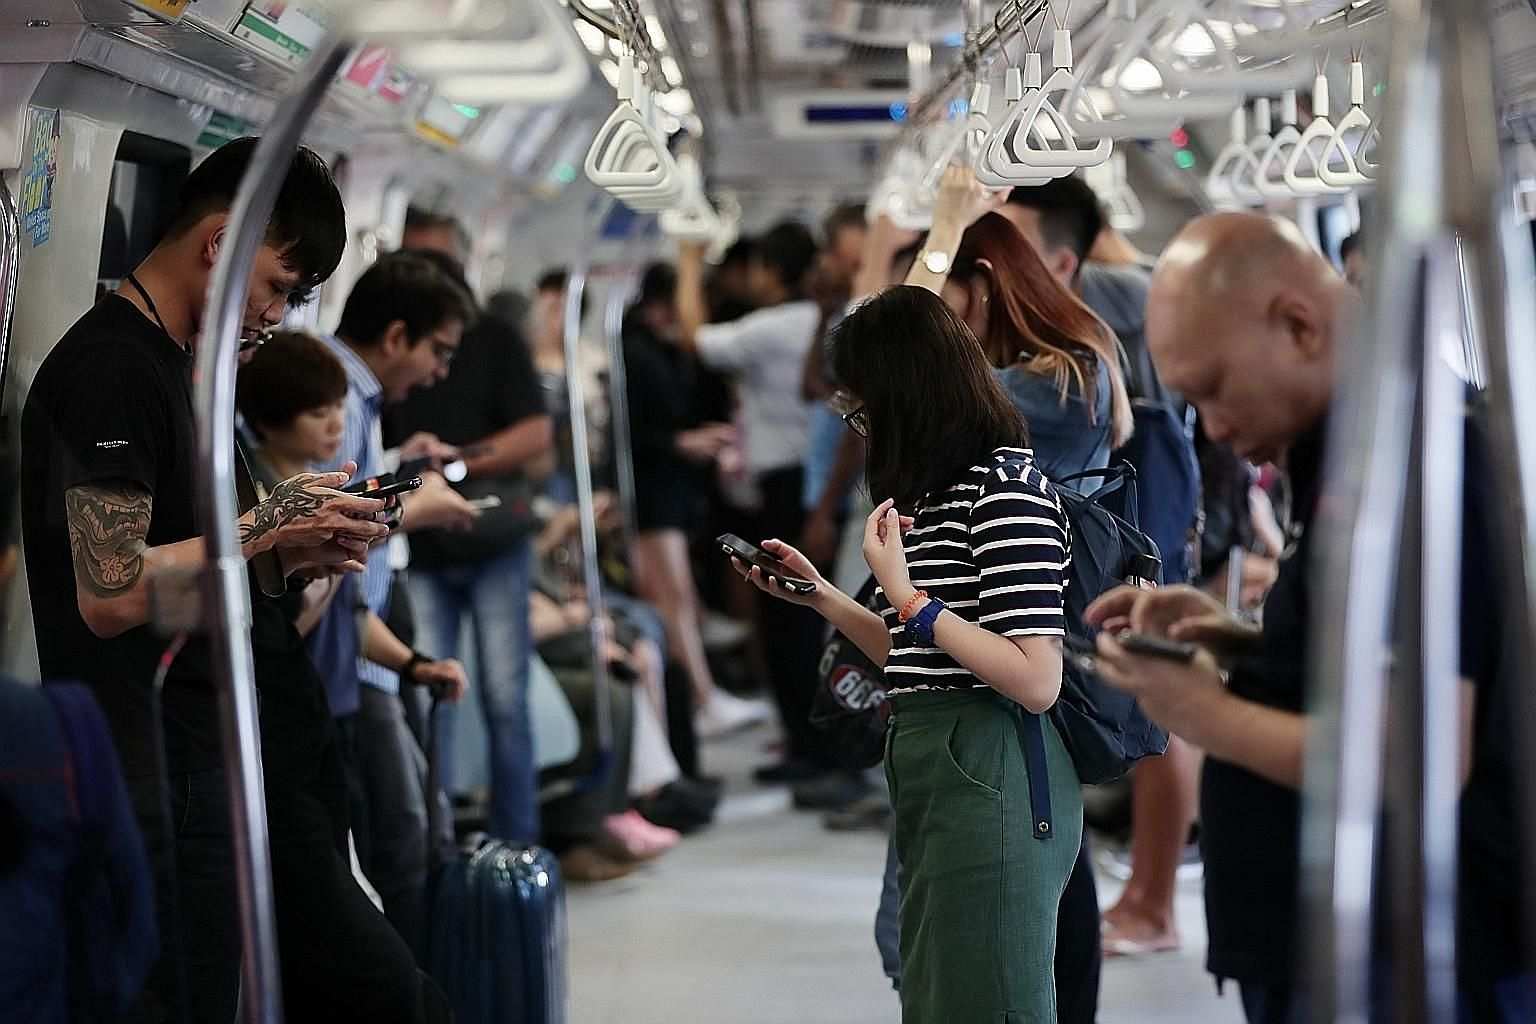 """By April 15, all overseas calls will come with the """"+"""" prefix to help the users of mobile phone lines better identify possible scams. Overseas-based scammers sometimes spoof calls to look like local numbers, said Senior Minister of State for Communic"""